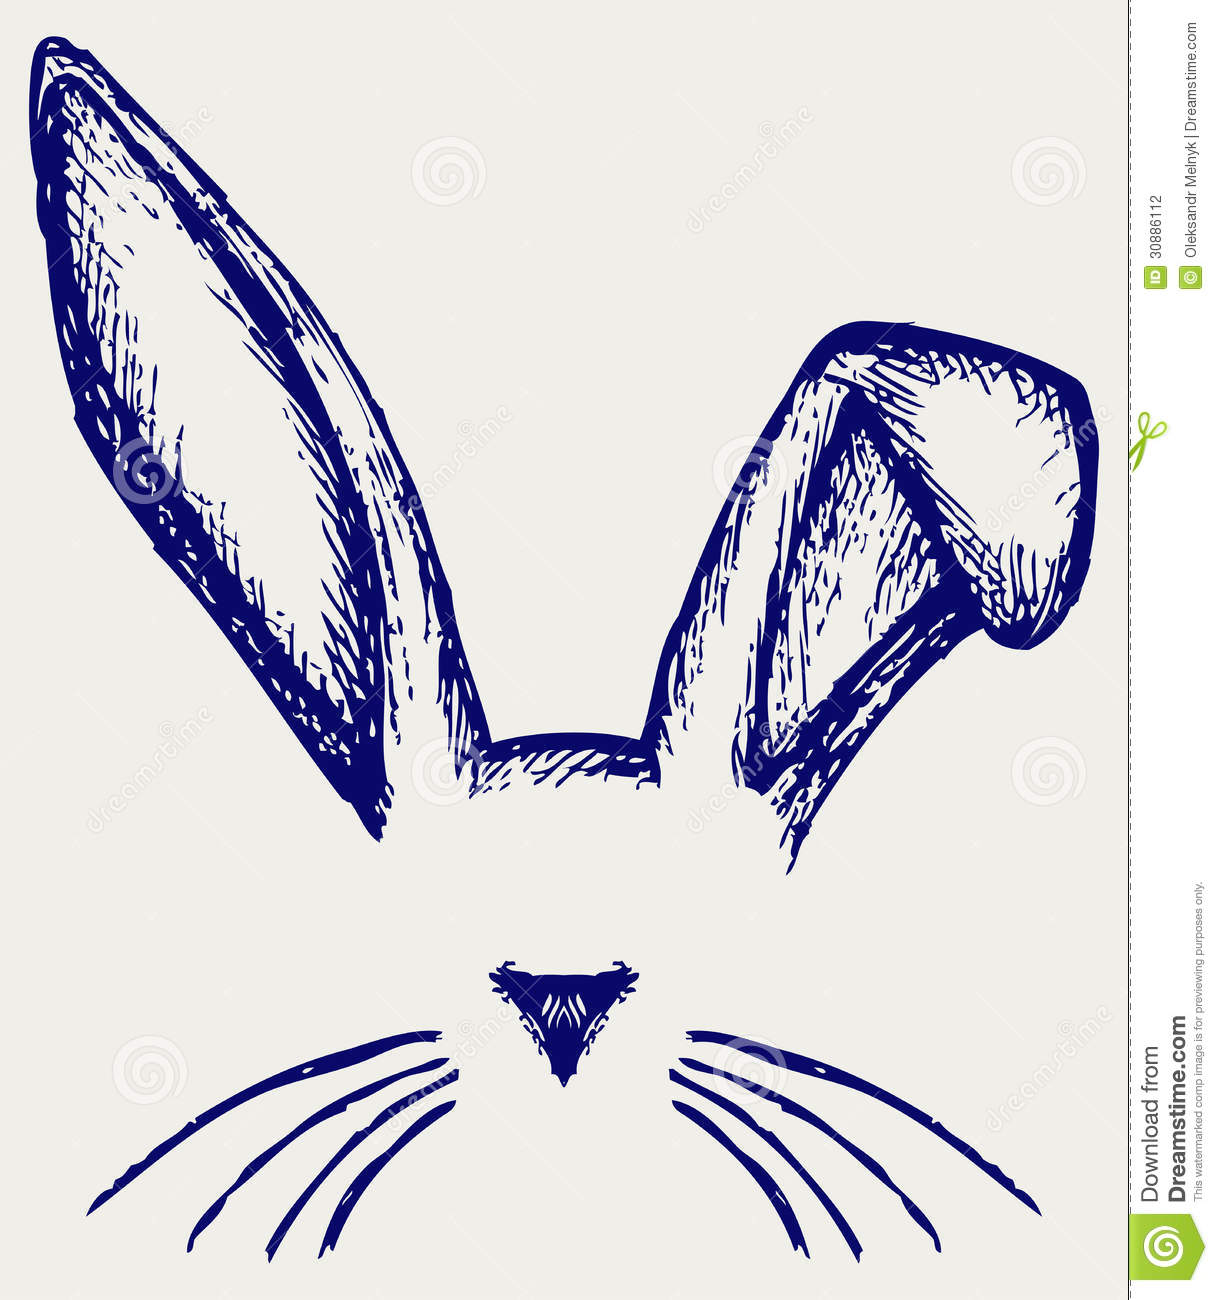 Easter Bunny Ears Stock Photography - Image: 30886112